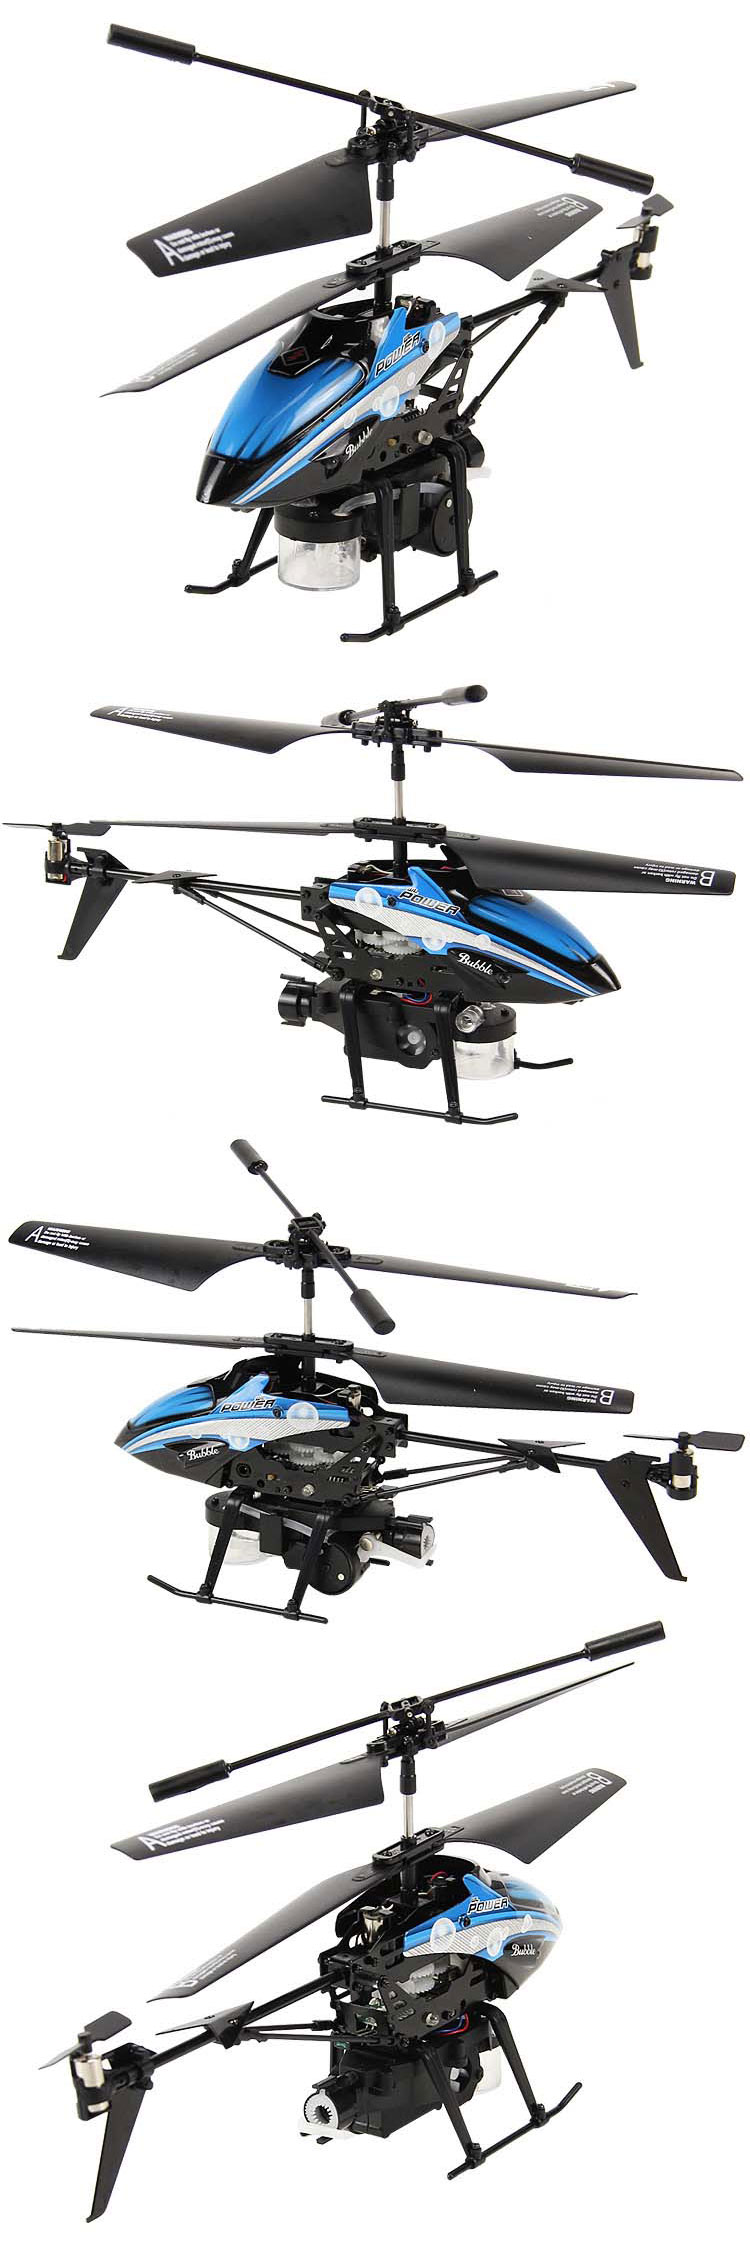 WL V757 Blow Bubbles RC Helicopter